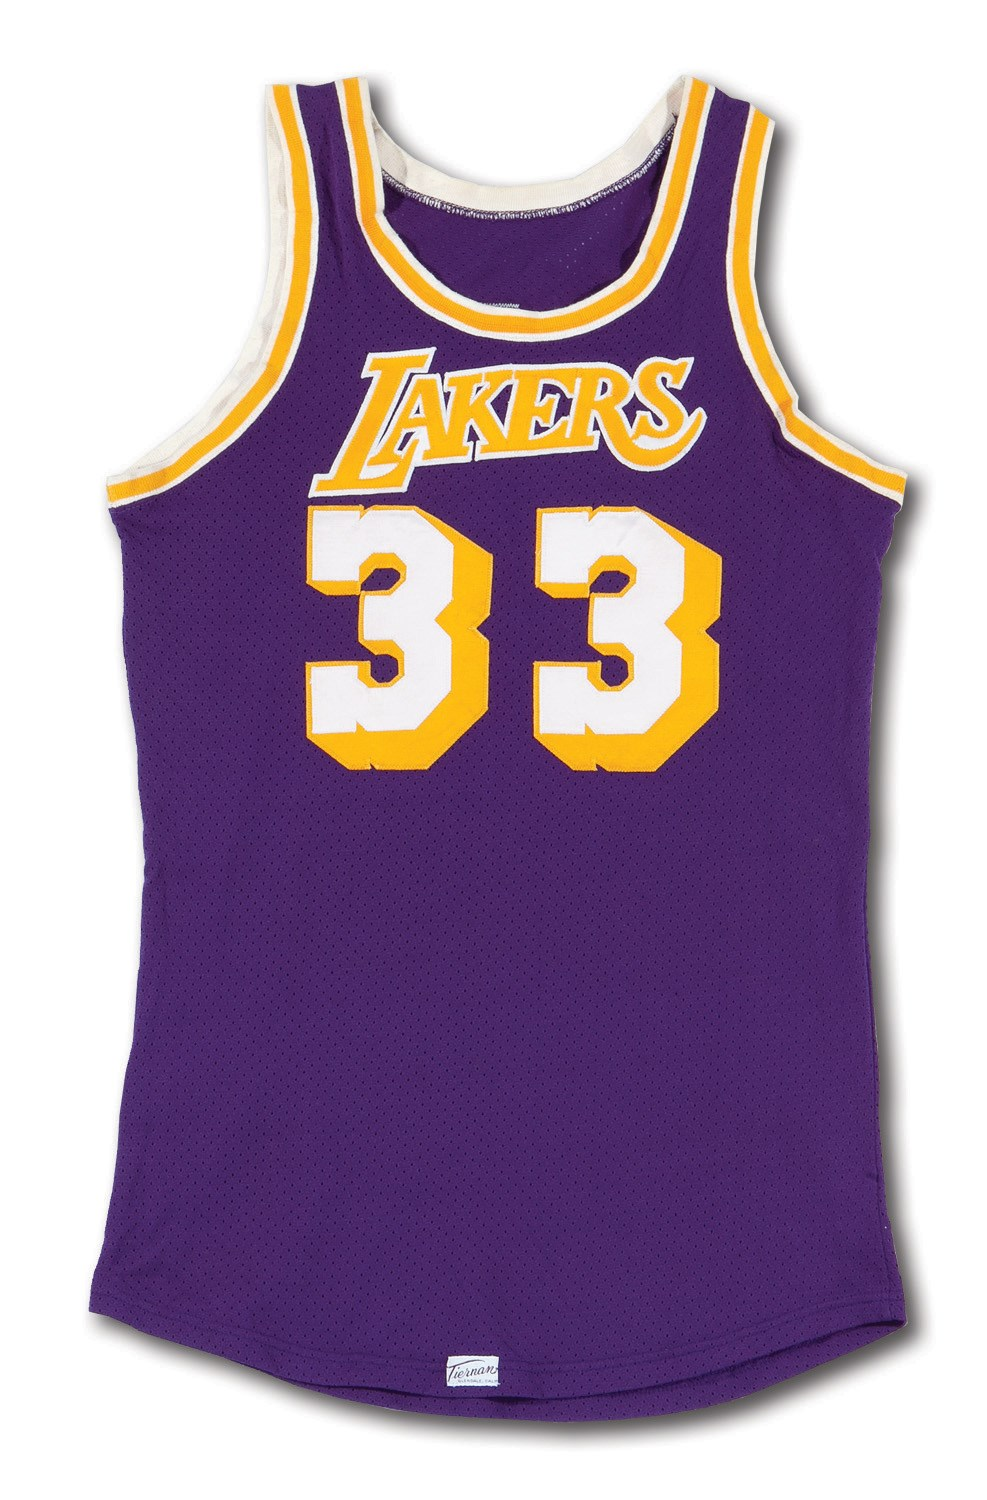 3482b4f0fab EARLY 1980S KAREEM ABDUL-JABBAR LOS ANGELES LAKERS GAME WORN ROAD JERSEY  (HOLLYWOOD AGENT. Touch to zoom